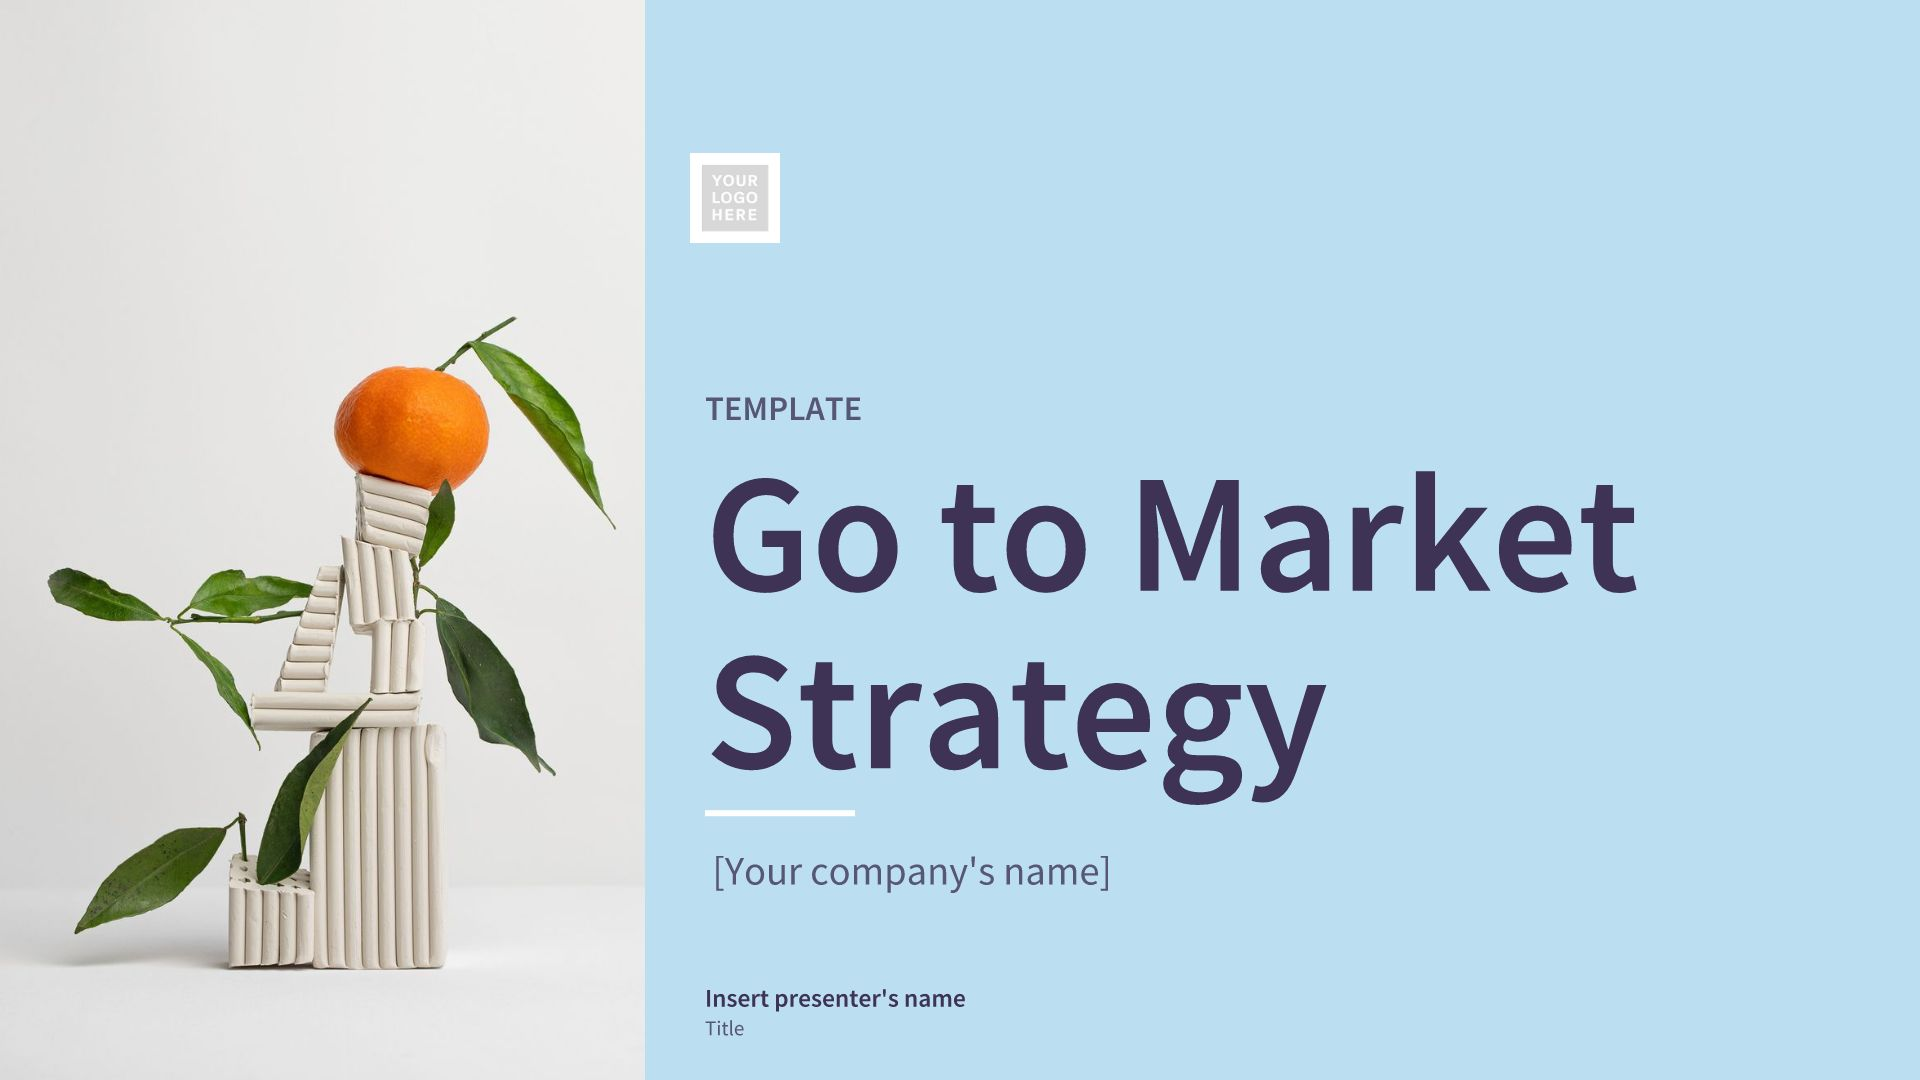 Go to Market Strategy Example